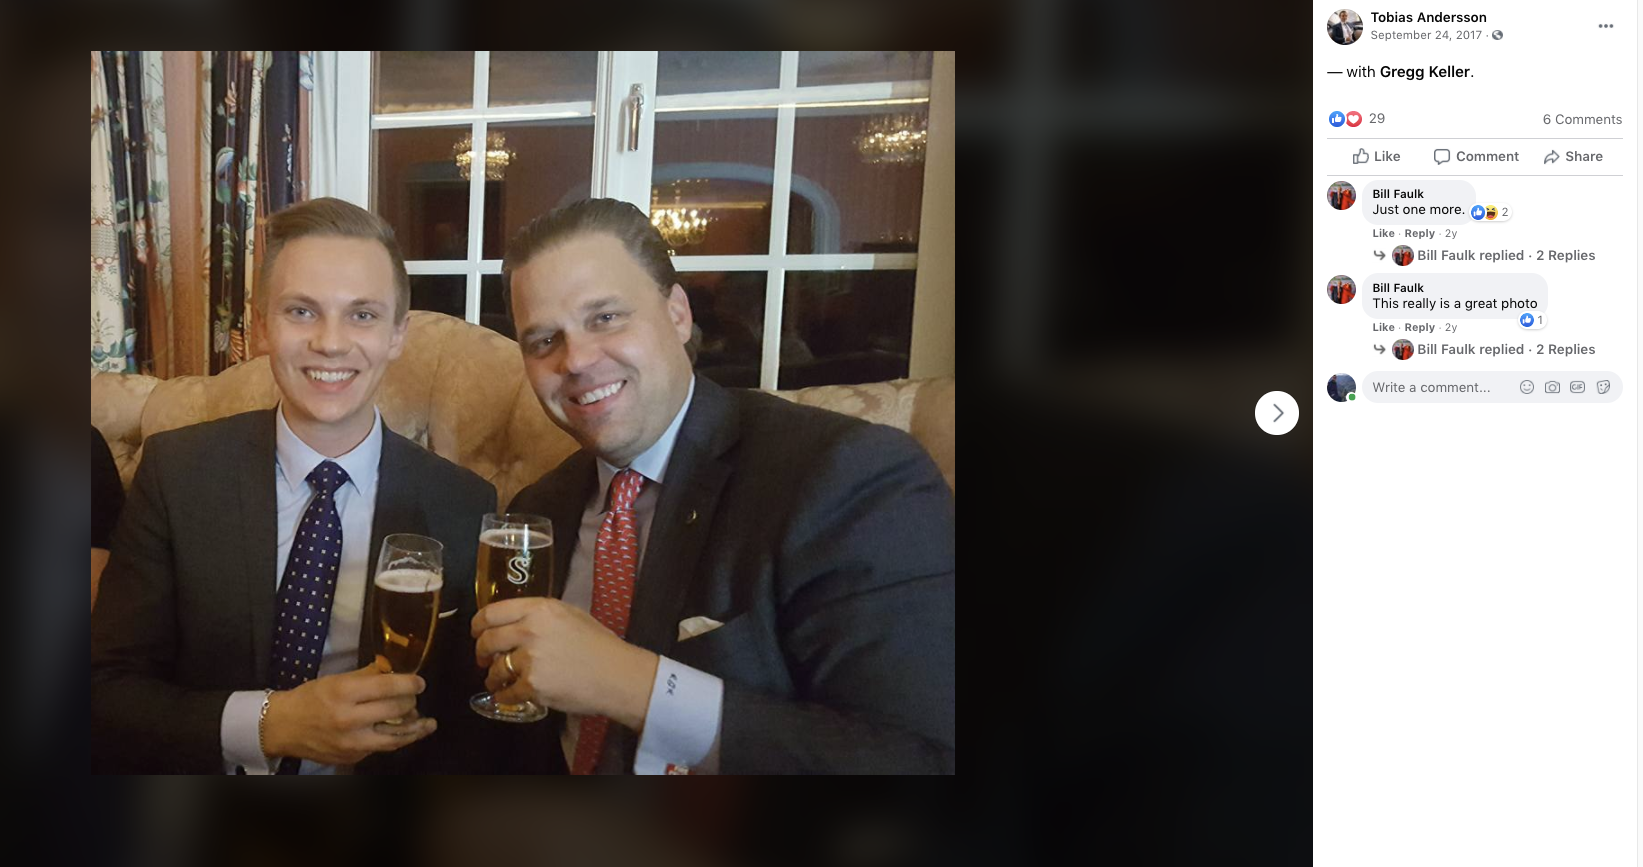 Screen Shot 2020-09-09Tobias Andersson (L), a rising star among the Sweden Democrats, shares drinks with GOP consultant Gregg Keller (R) in a photo posted to Facebook on Sept. 24, 2017 at 11.31.47 AM.png